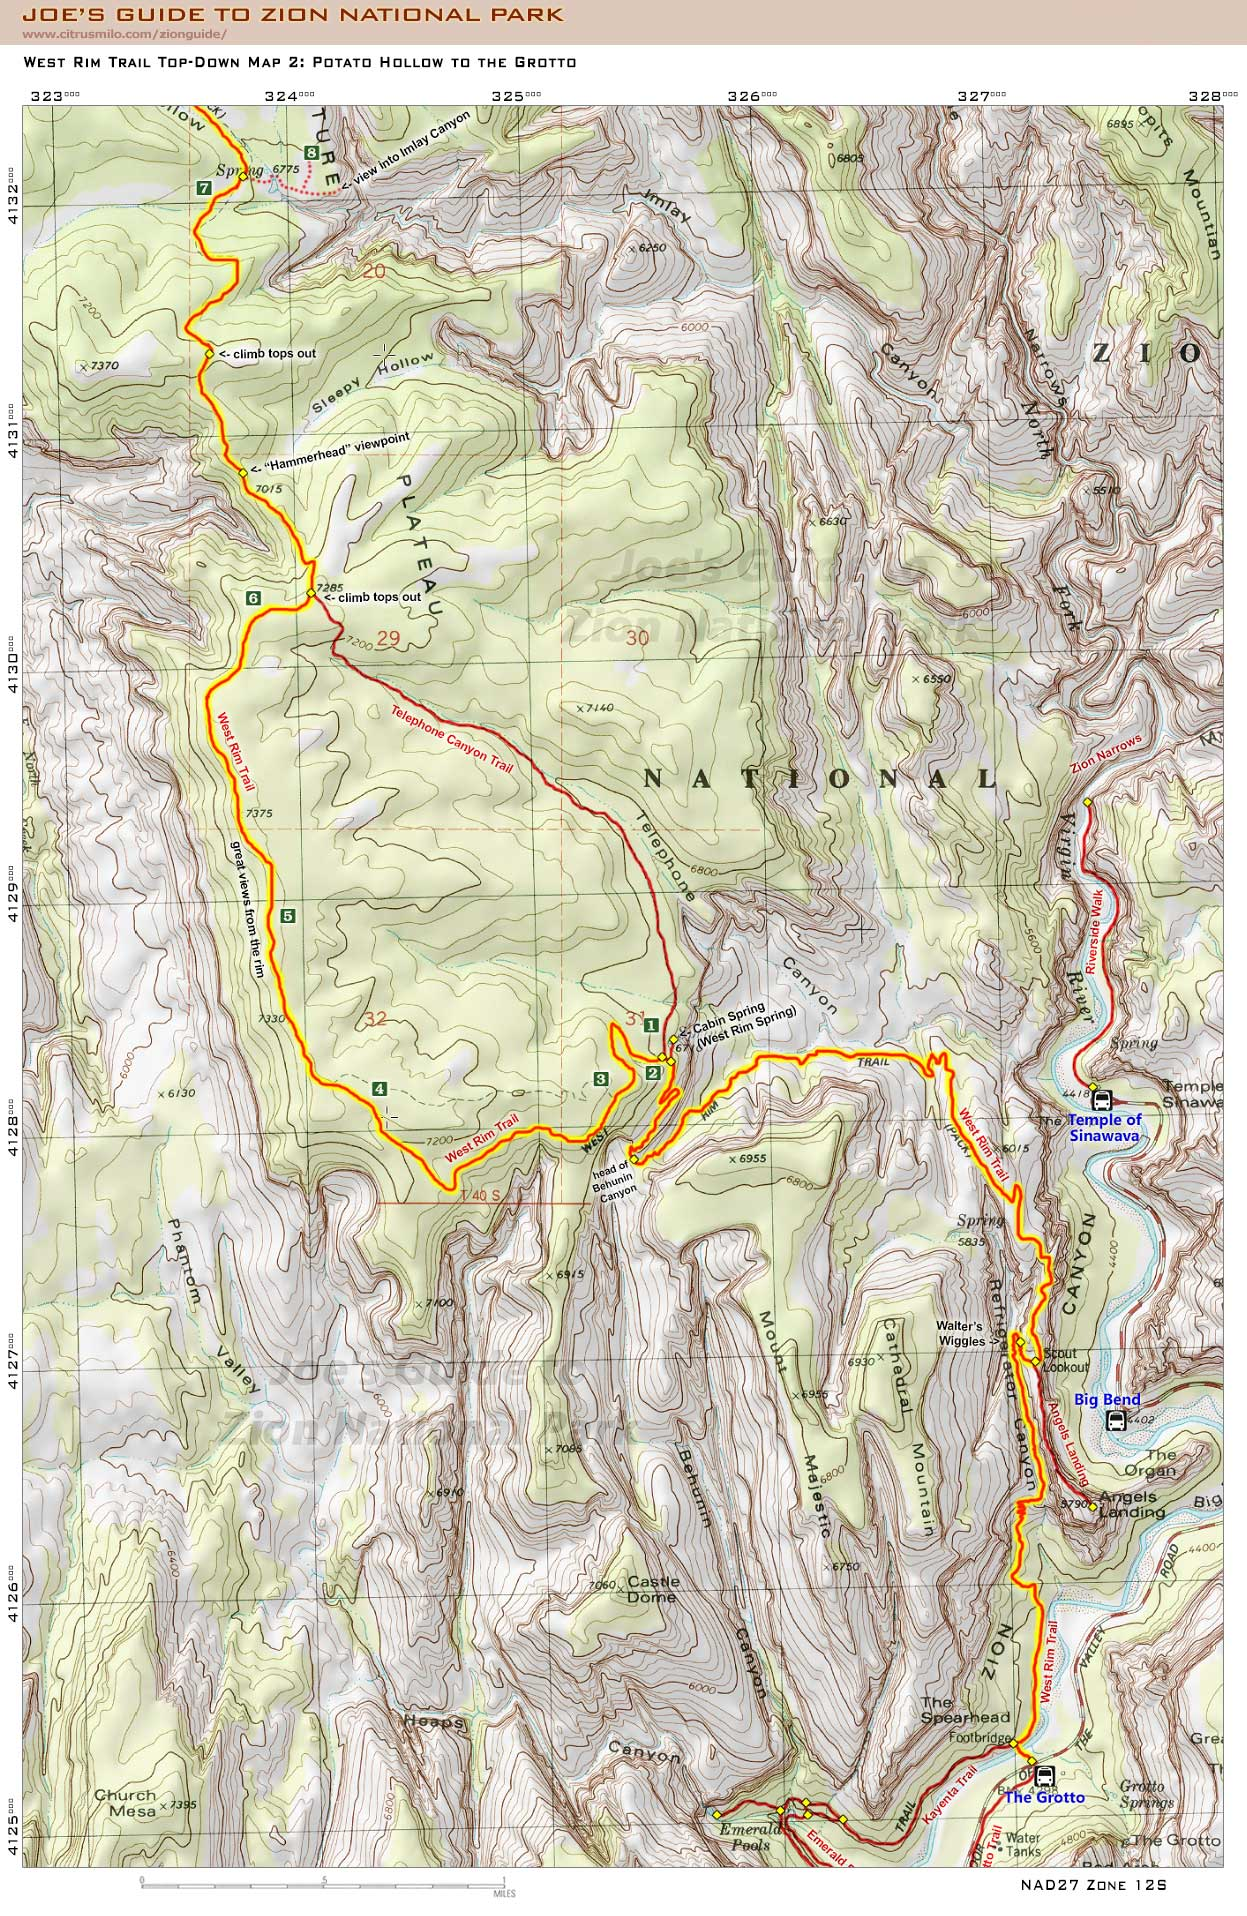 Joe's Guide to Zion National Park - West Rim Trail Top-Down Map 2 on national hiking trails map, angels landing trail map, cuyahoga valley national park trail map, draper trail map, zion east rim trail map, colorado national monument trail map, yellowstone national park map, chickasaw national recreation area trail map, black mountains trail map, white river national forest trail map, big cypress national preserve trail map, petrified forest trail map, kaibab national forest trail map, mt. zion utah map, capitol reef trail map, glacier national park on us map, cuyamaca rancho state park trail map, beacon rock state park trail map, san isabel national forest trail map, fishlake national forest trail map,